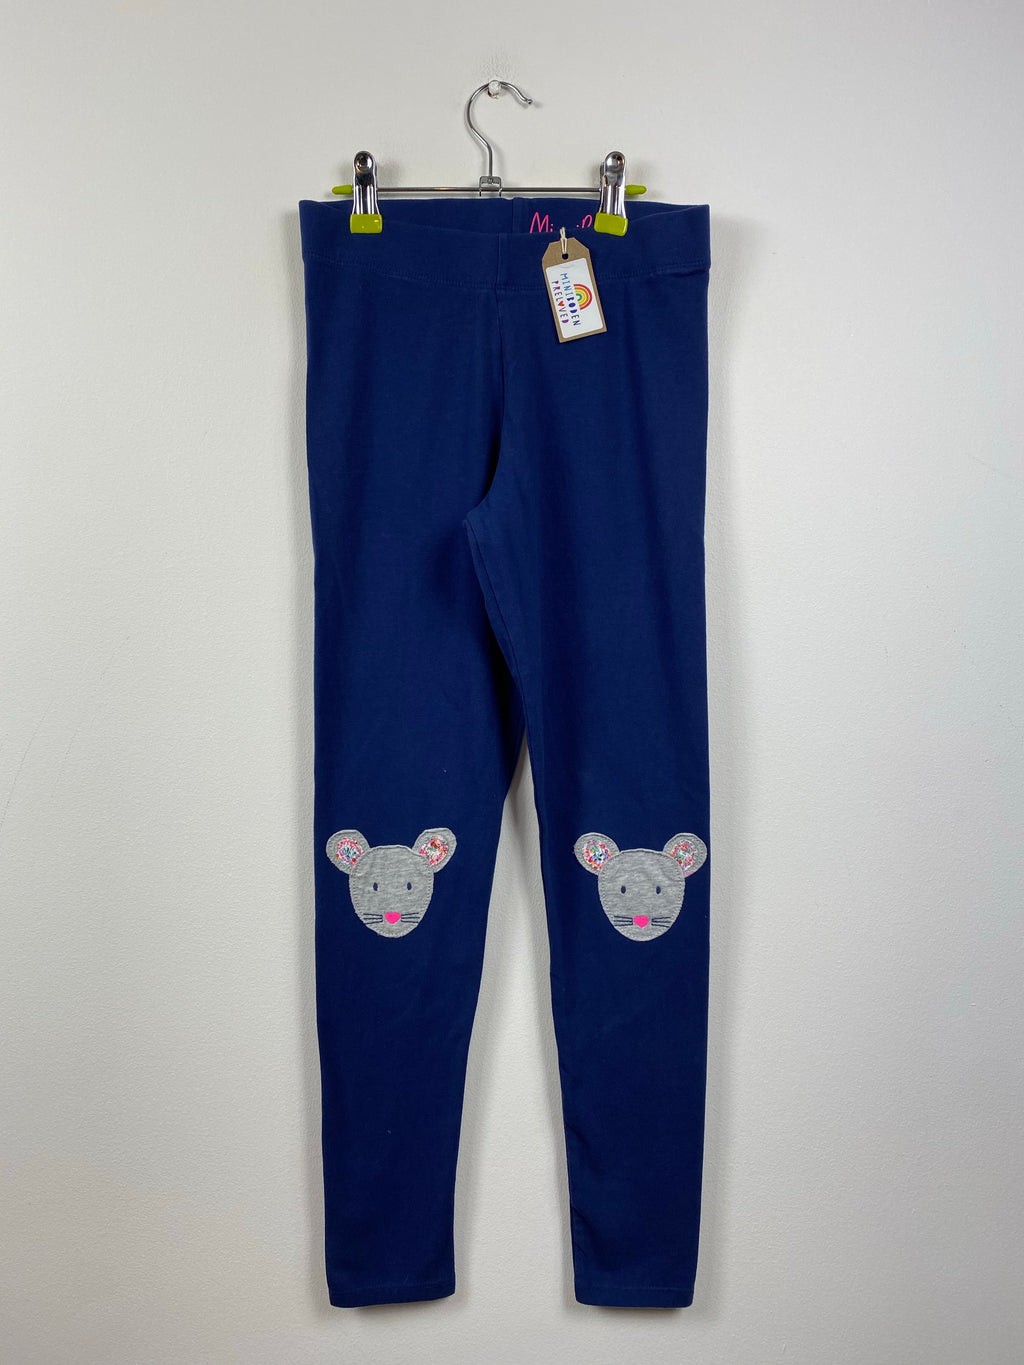 Navy Applique Mouse Knees Leggings (11-12 Years)